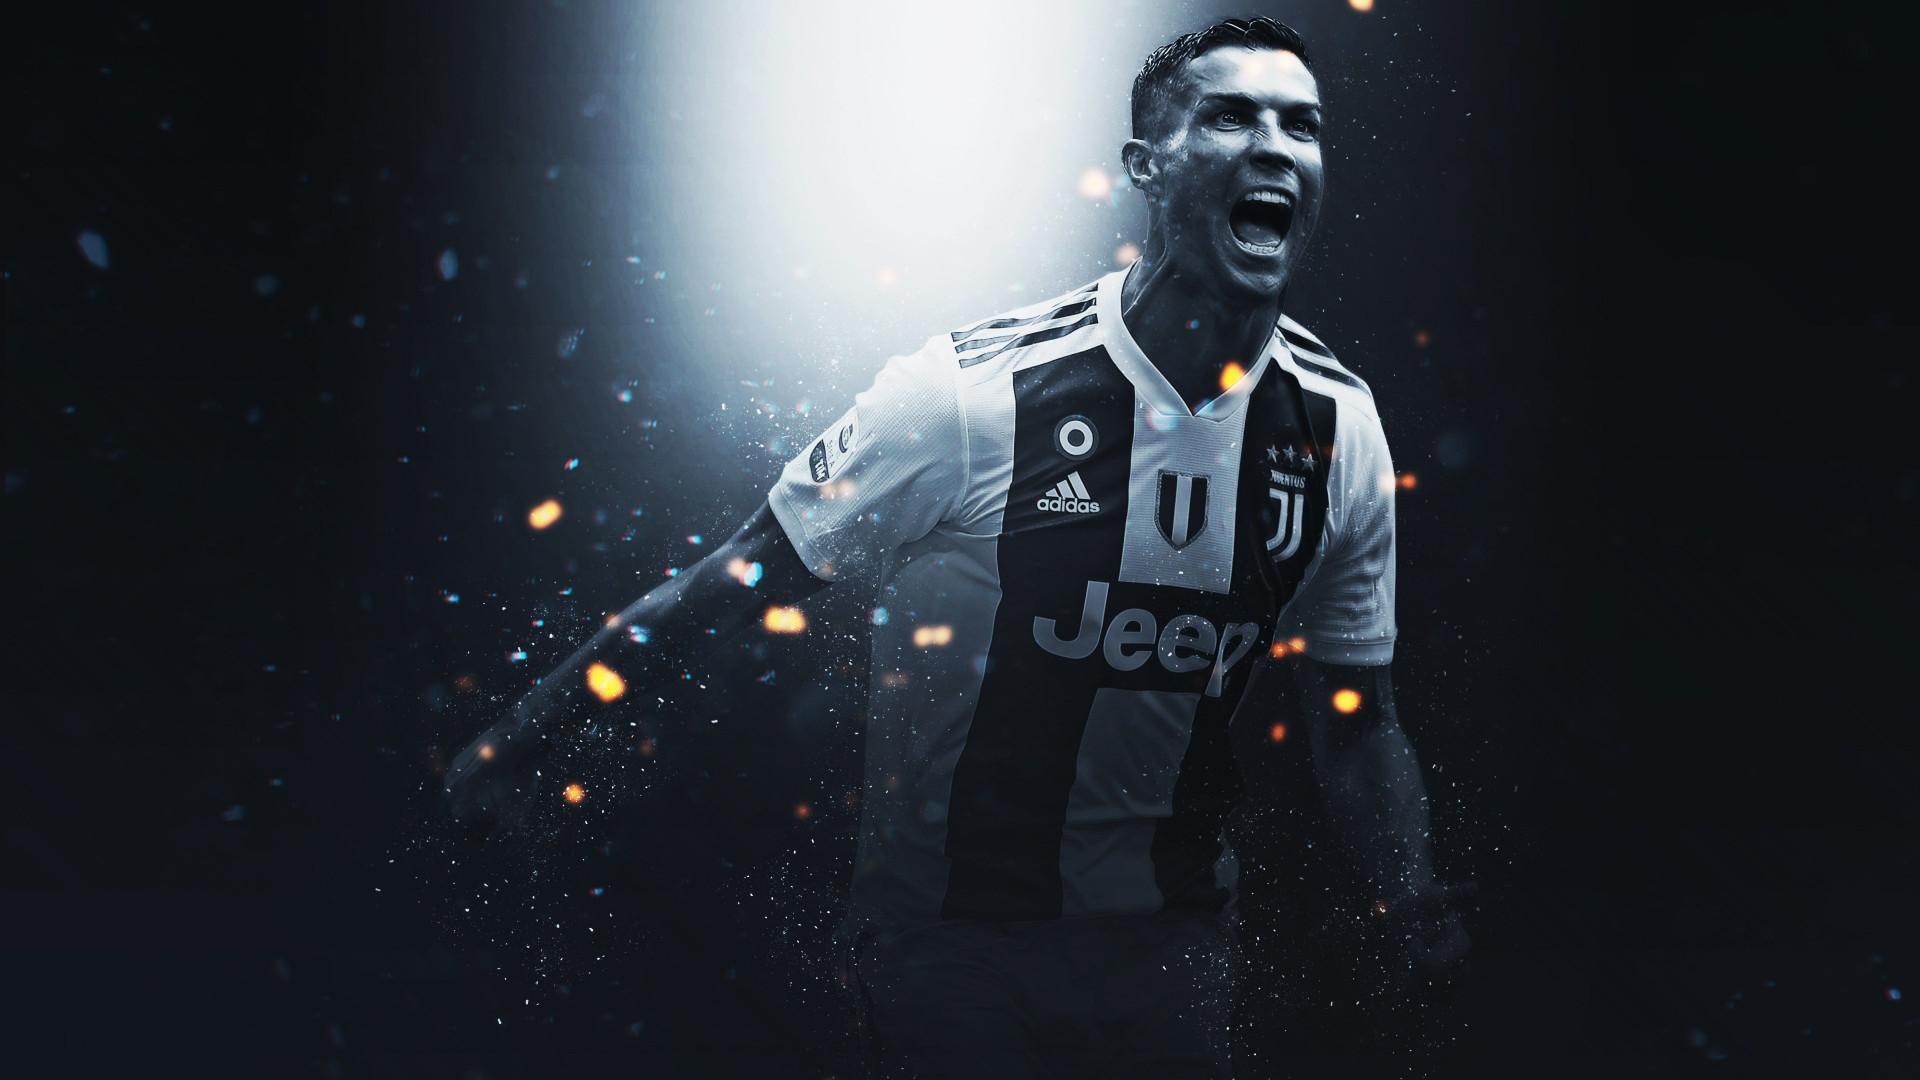 Cristiano Ronaldo at Juventus wallpaper 1920x1080